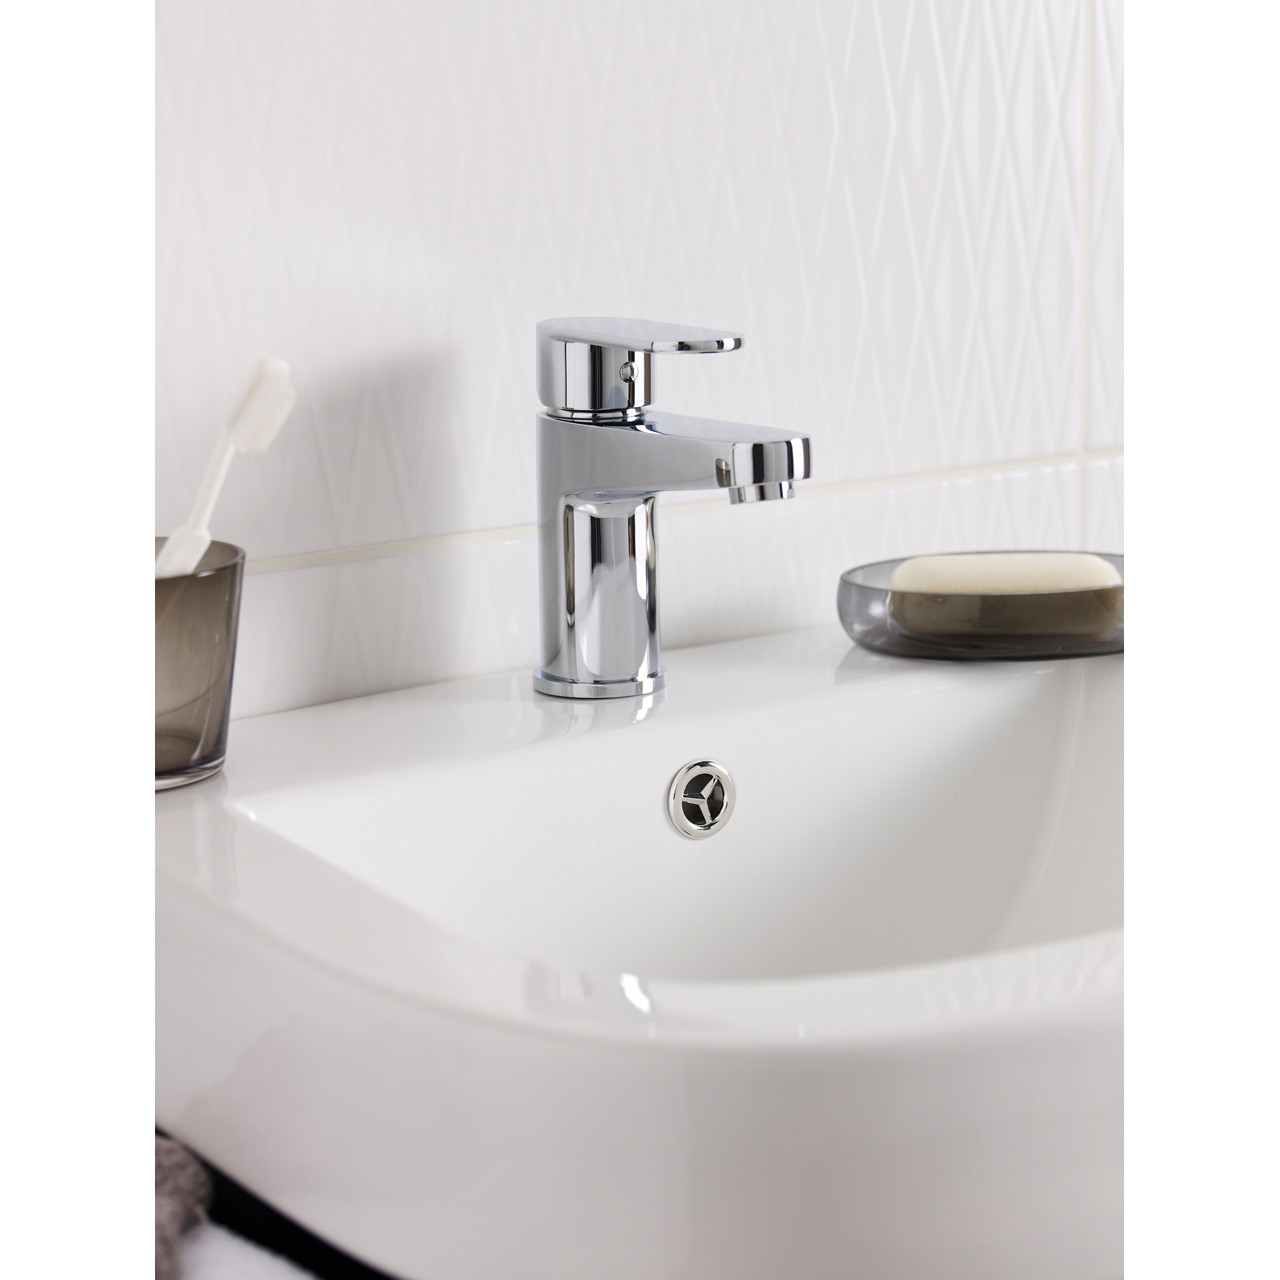 Ultra Ratio Mono Basin Mixer - RAT325